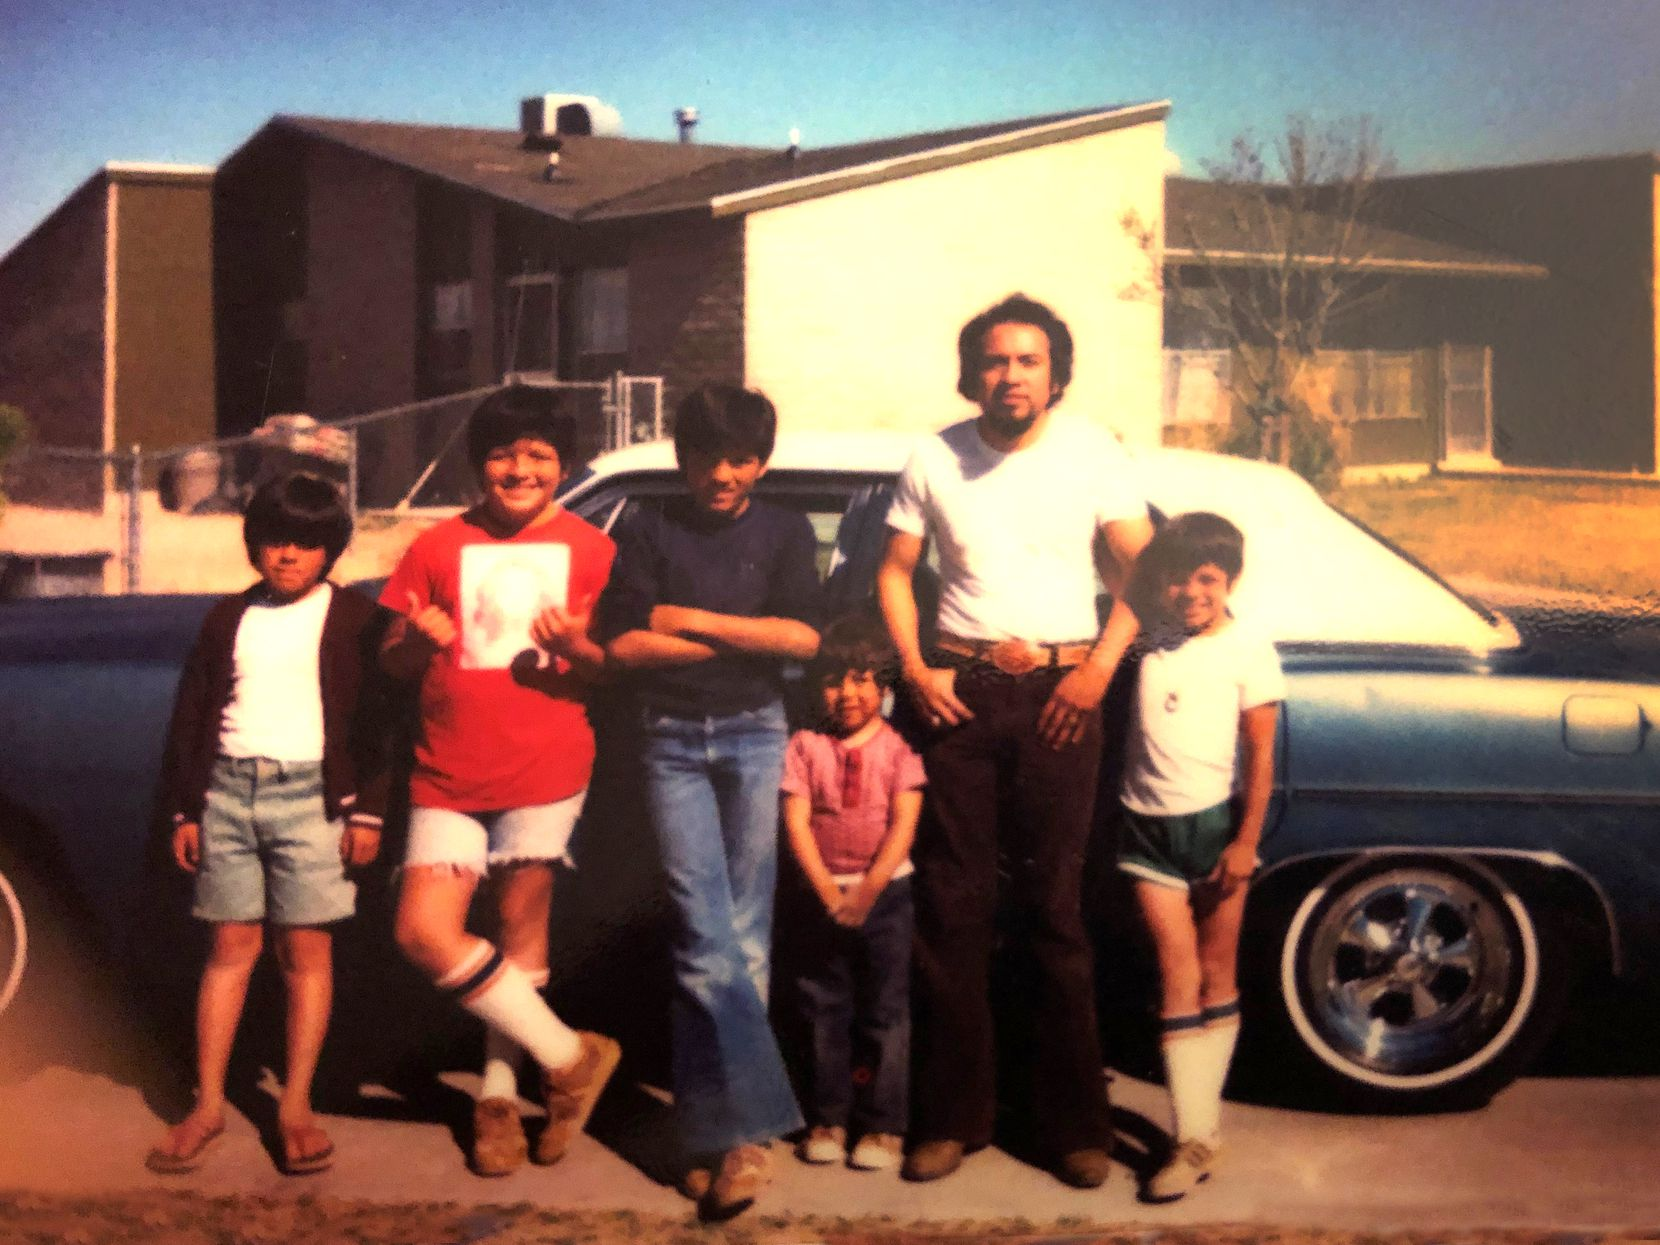 Fred Ortiz (in blue jeans) at 11, with his father, Aniceto, and four brothers in the Lyndon B. Johnson public housing complex of El Paso.